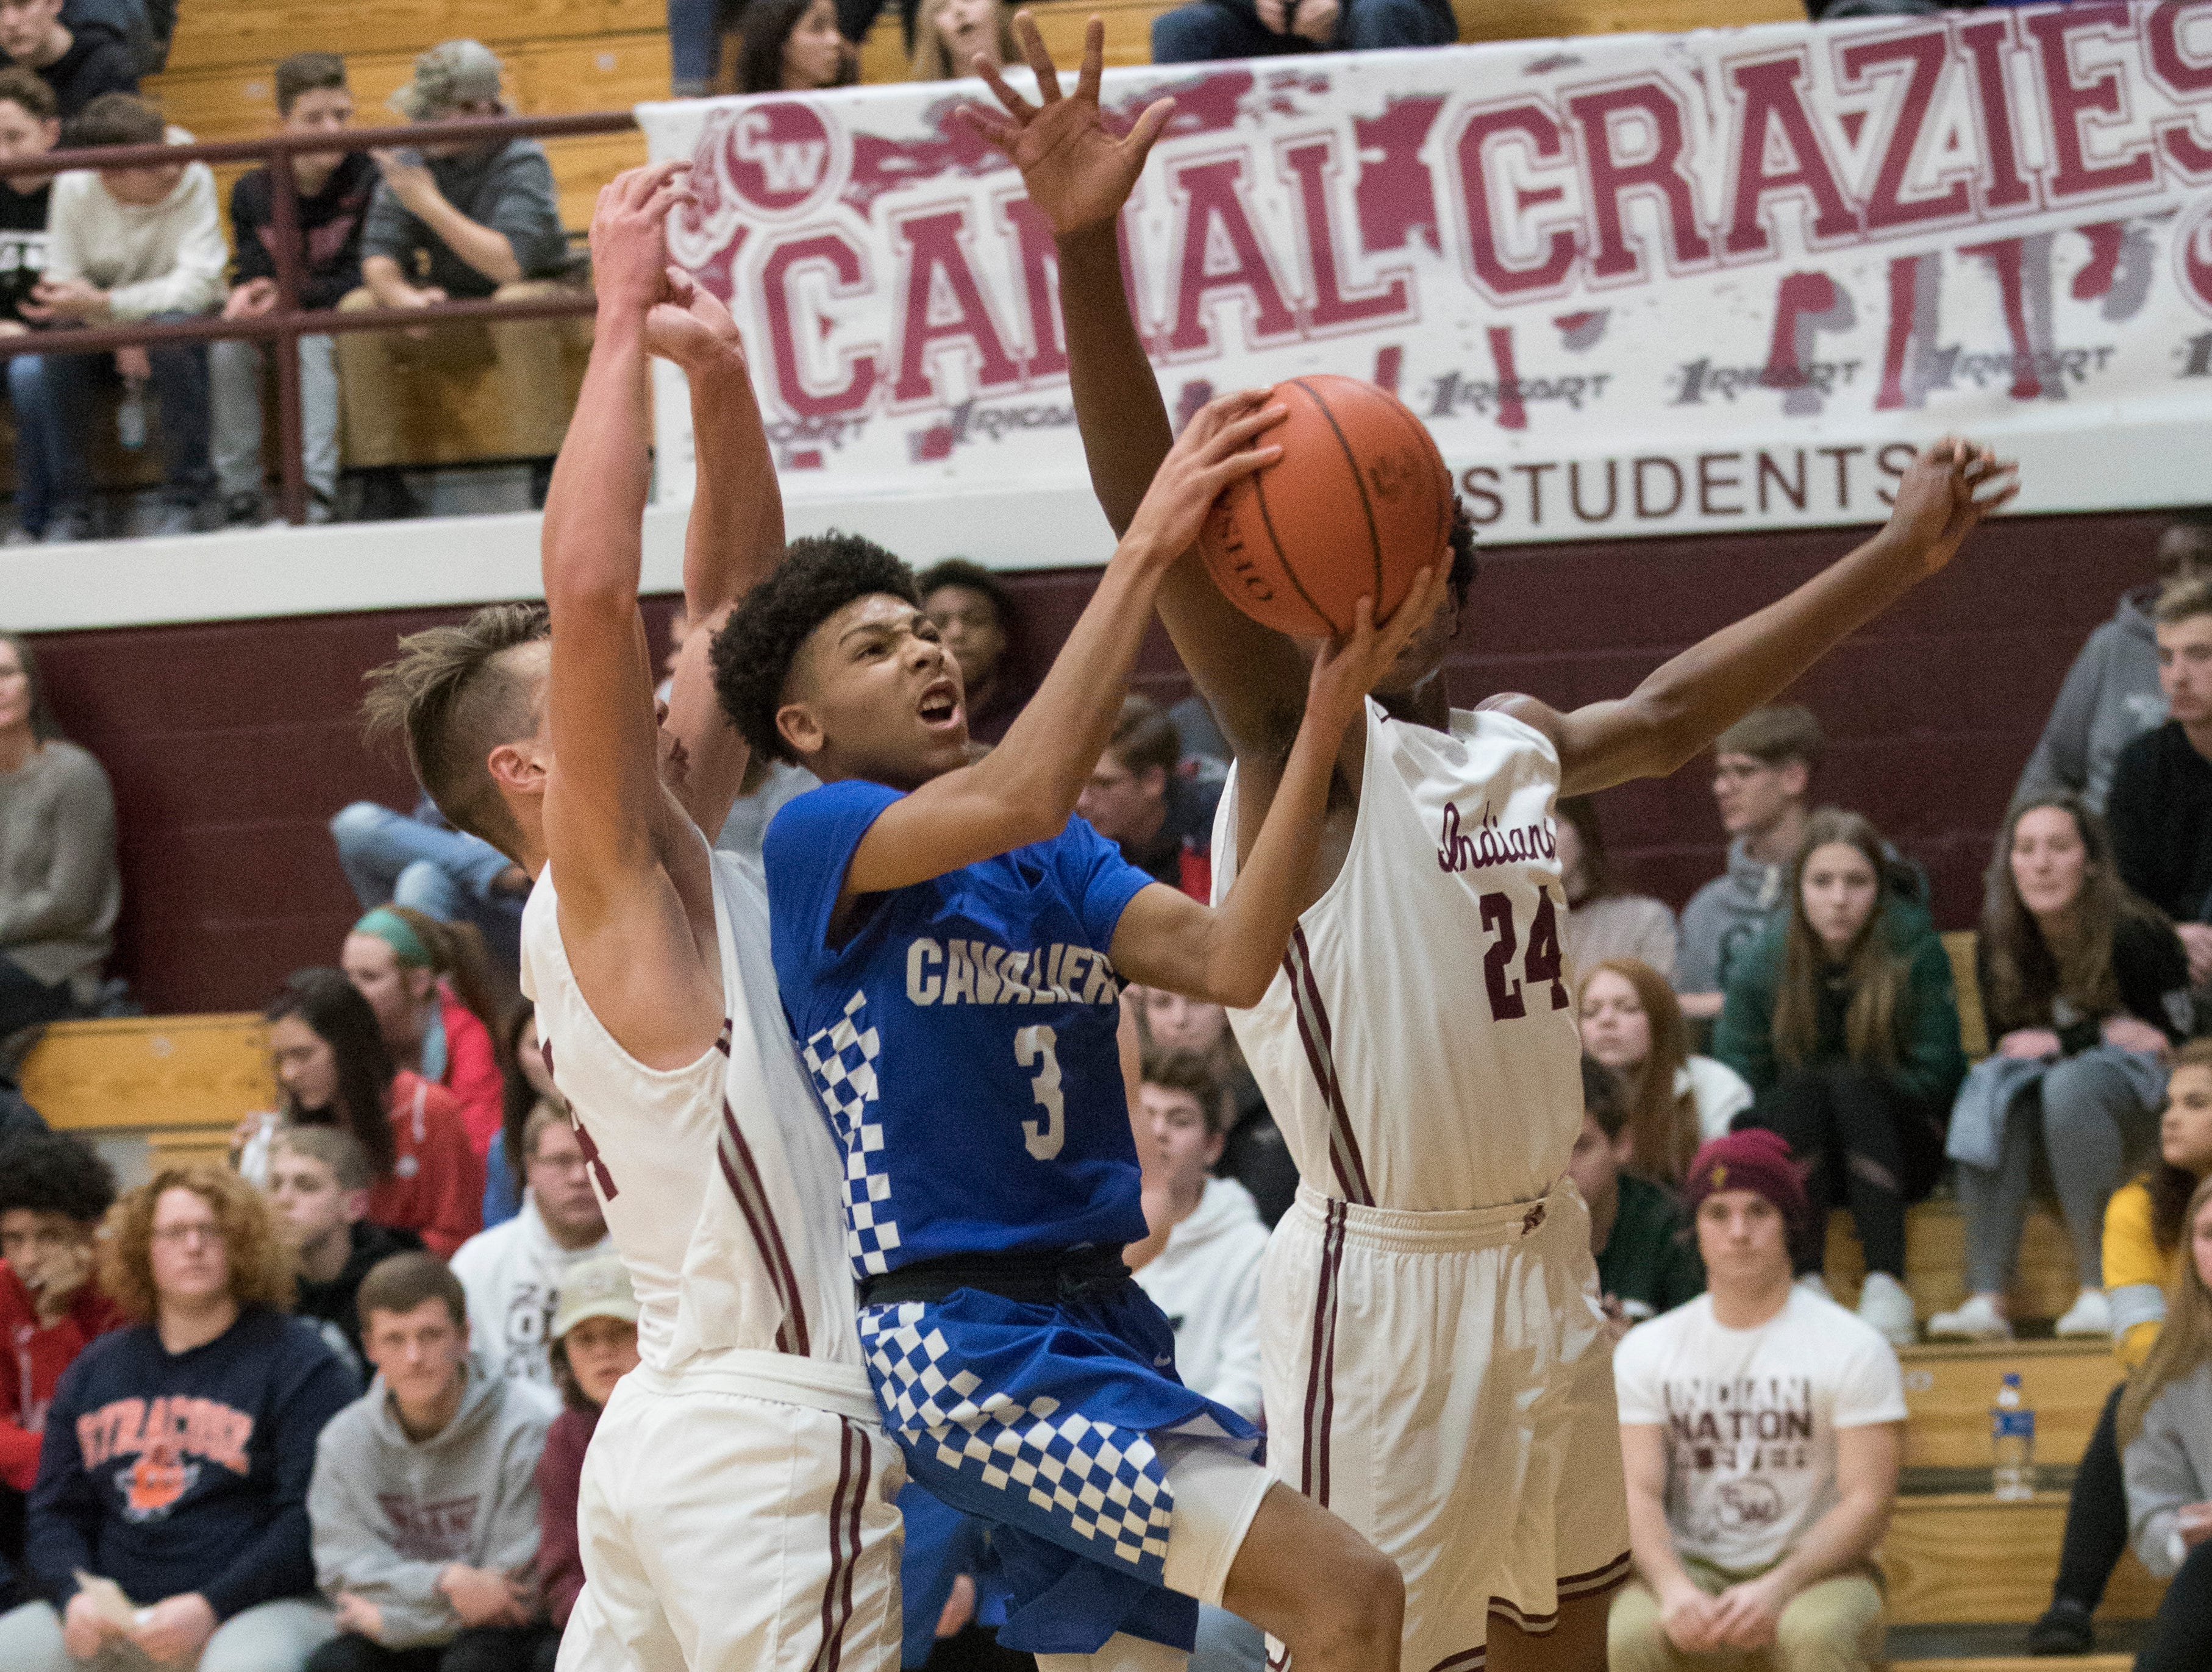 Junior Tre Beard jumps to score against Canal Winchester Wednesday night in Canal Winchester, Ohio. Beard scored 17 points for the Cavaliers.